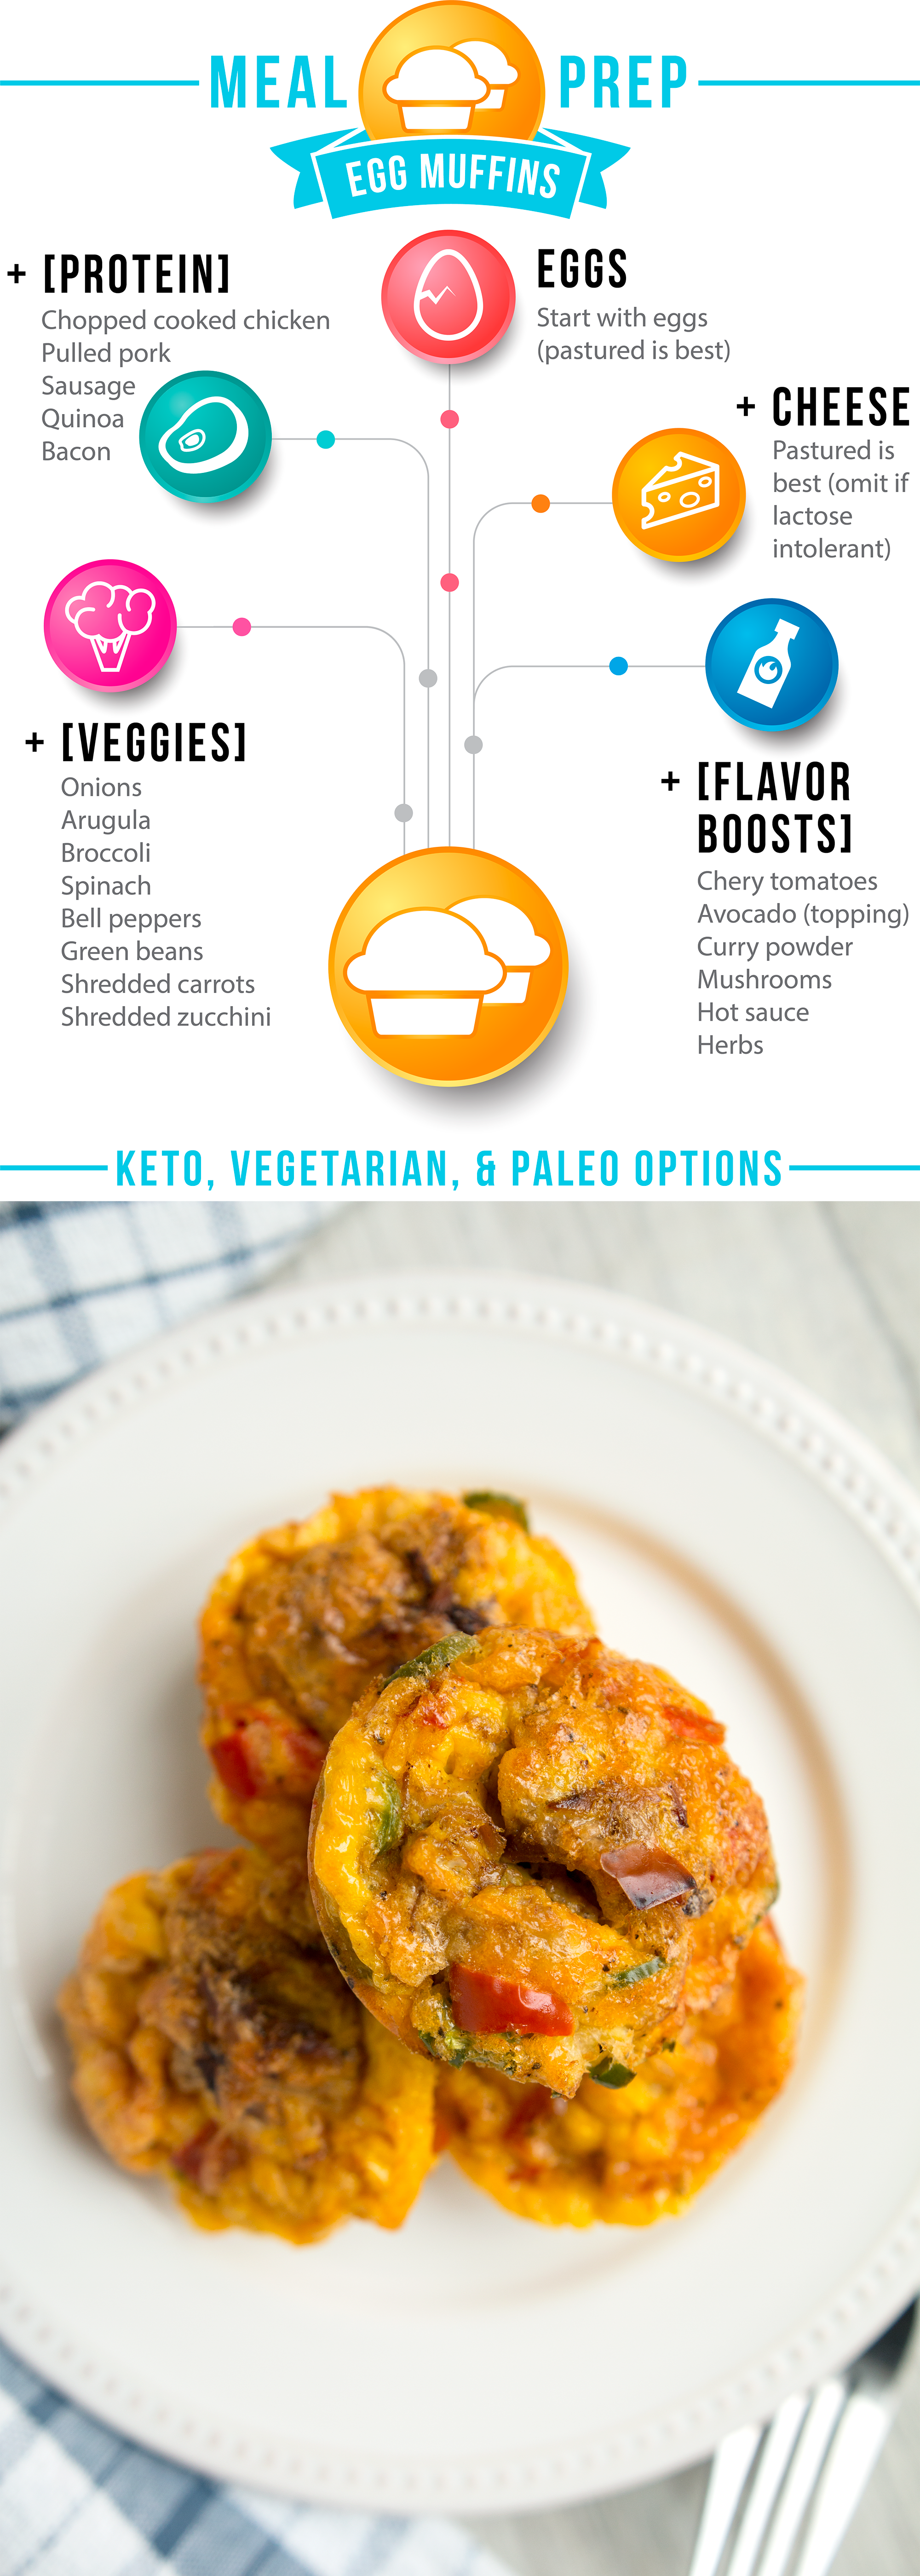 Check out my meal prep roadmap for the ultimate in adaptable: Egg Muffins! Made with delicious pastured eggs, plenty of veggies, the protein of your choice, and toppings to make your taste buds sizzle. via @freshplanetflvr